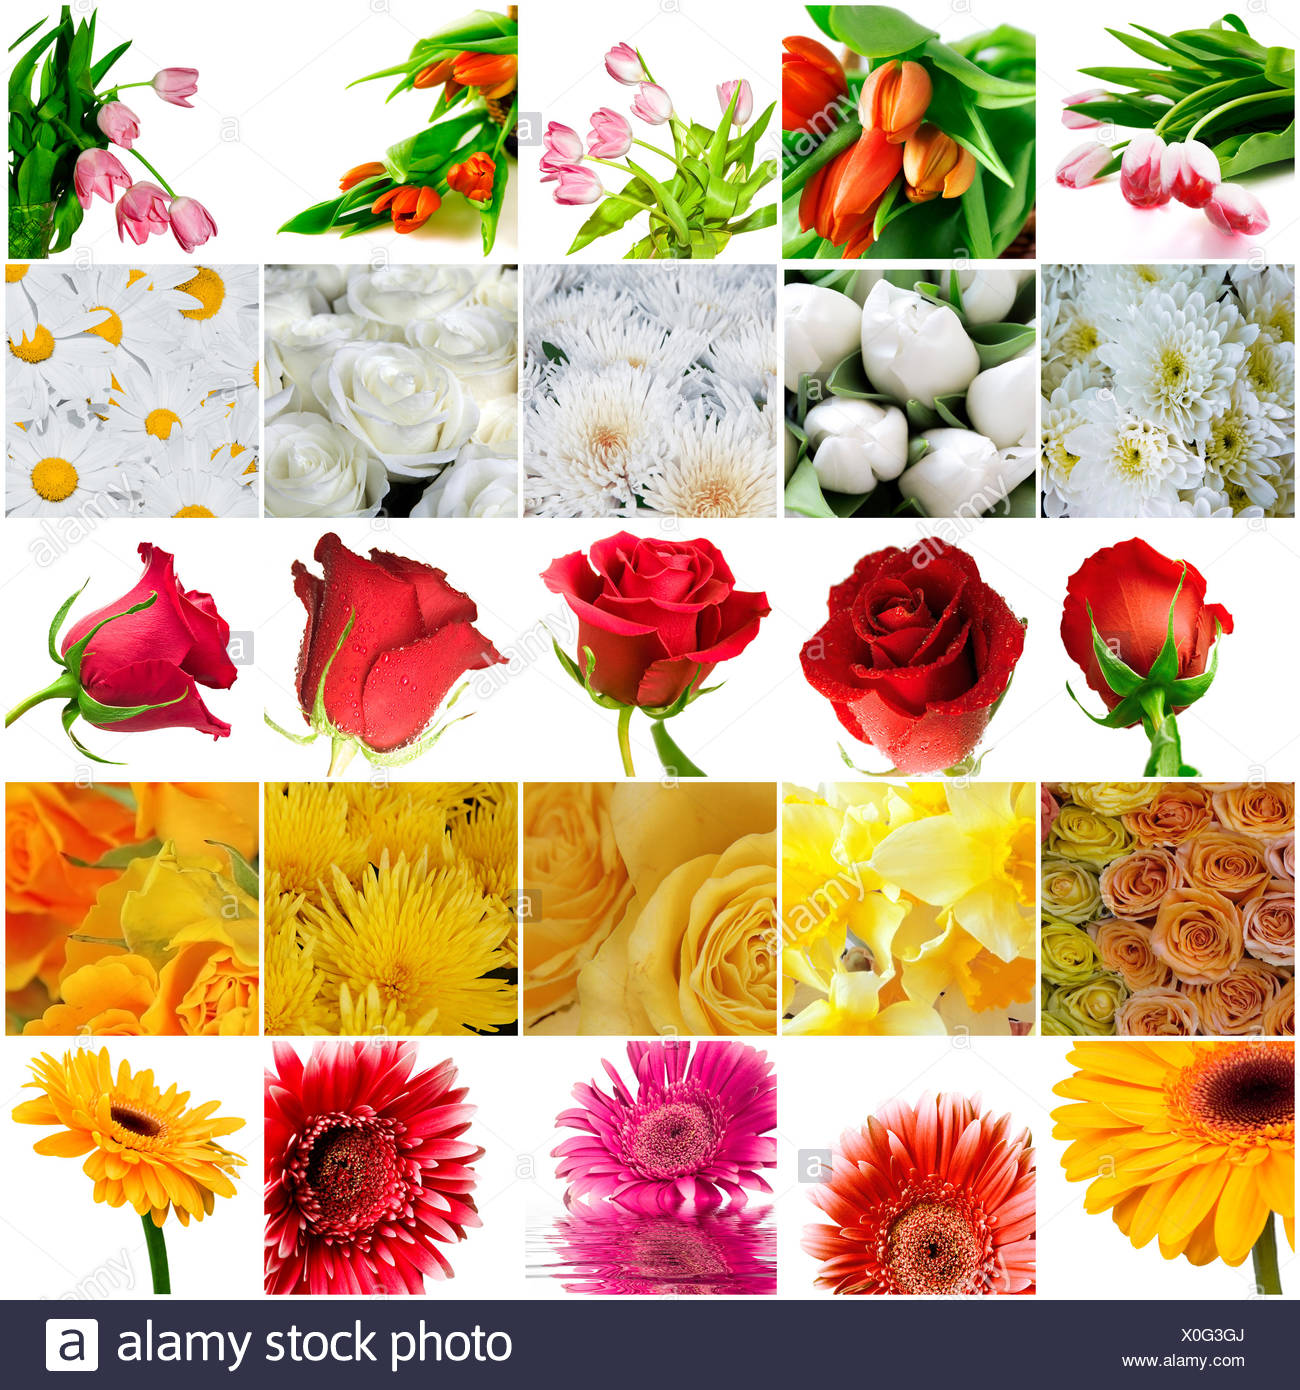 Many Beautiful Bright Flowers On A White Background Stock Photo